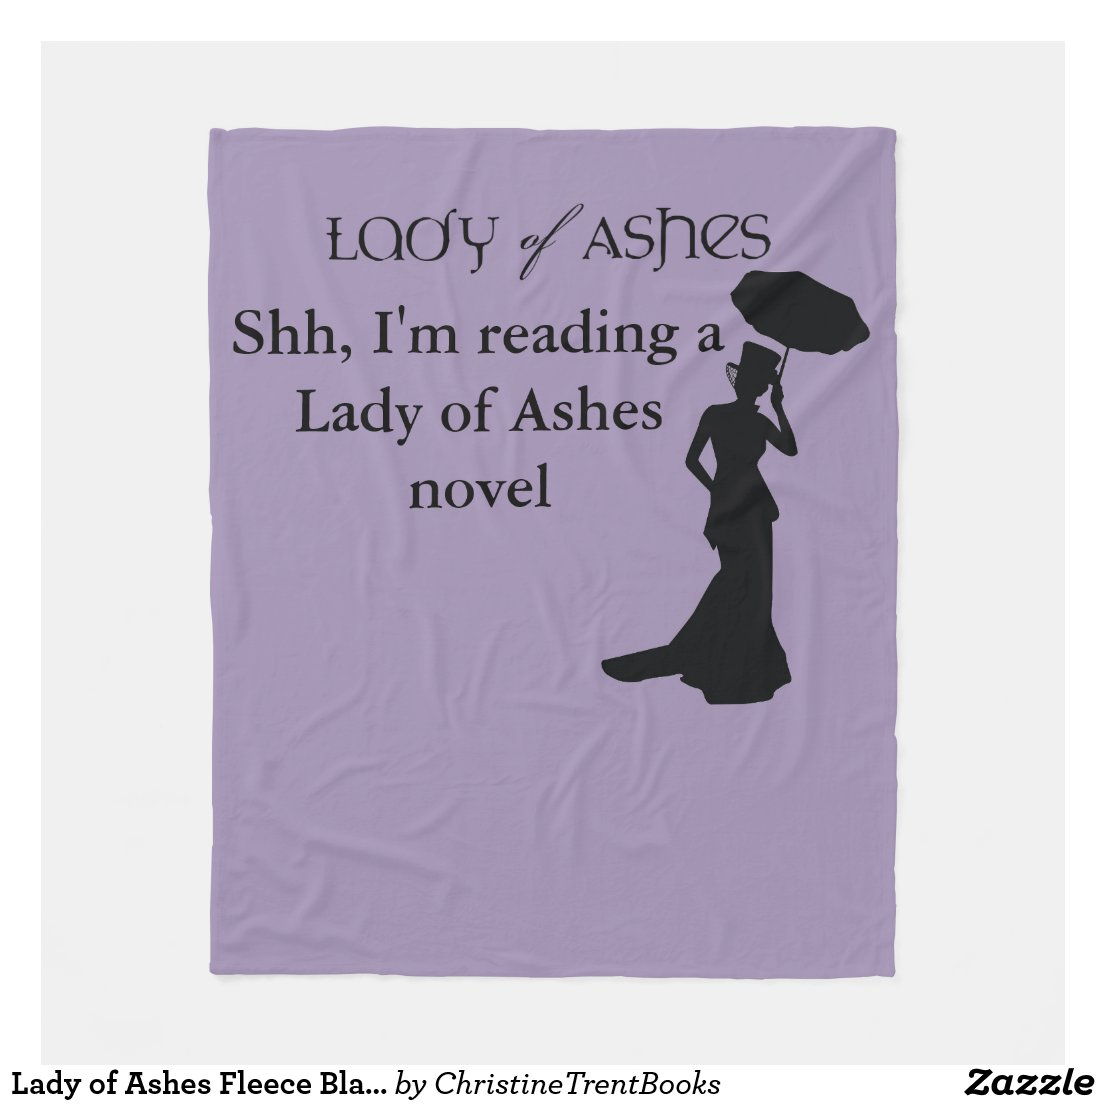 Lady of Ashes Fleece Blanket - Shh